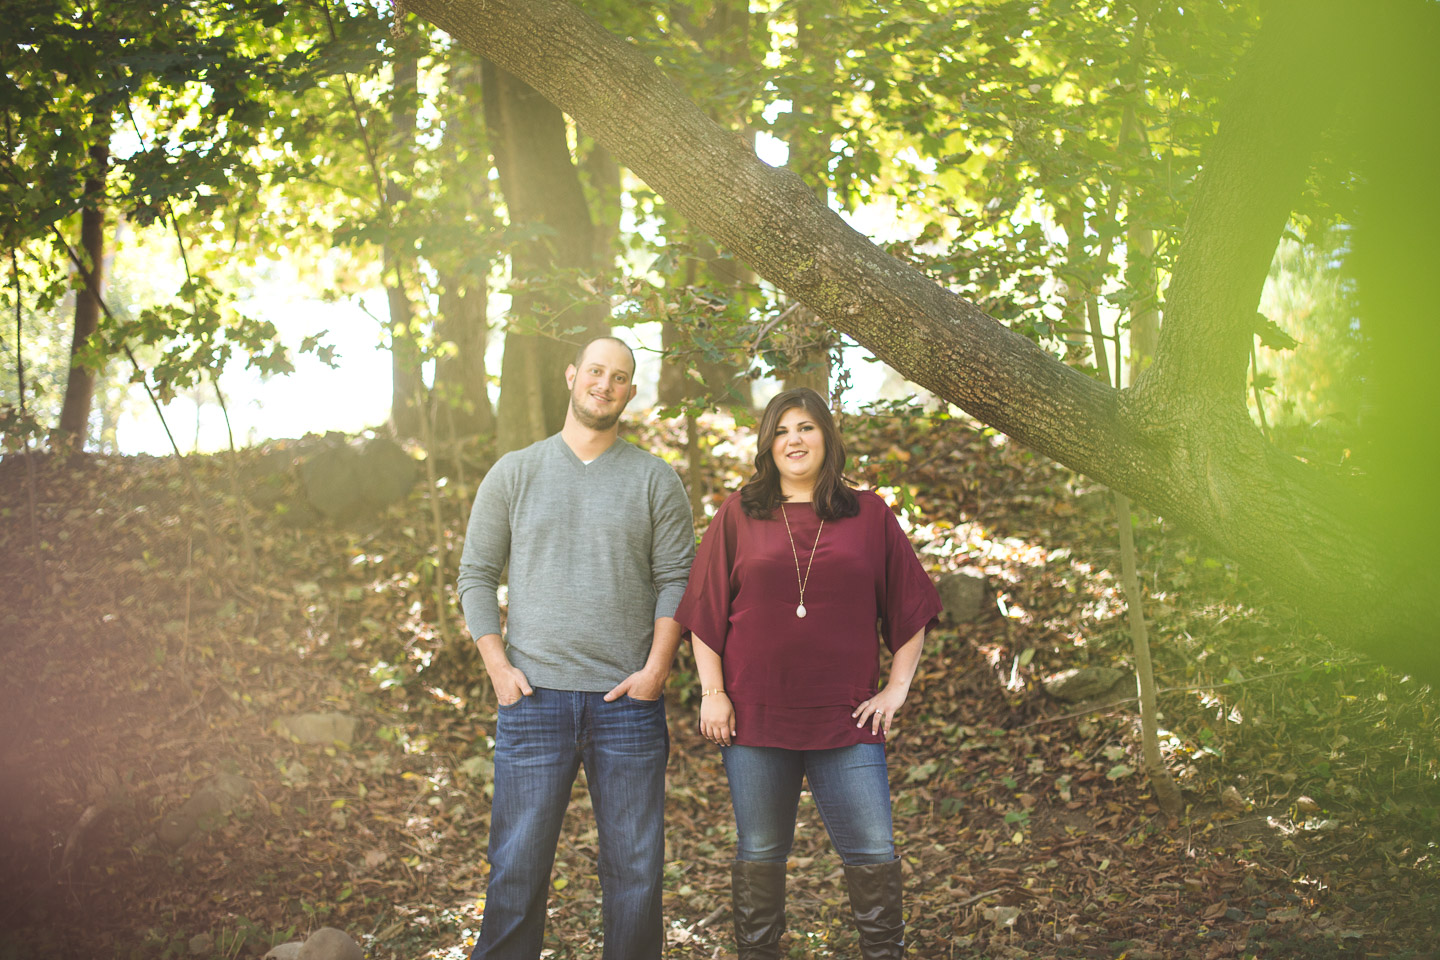 Engagement-Northville-Mill-Race-Village-David-Danielle-Slanted-Tree